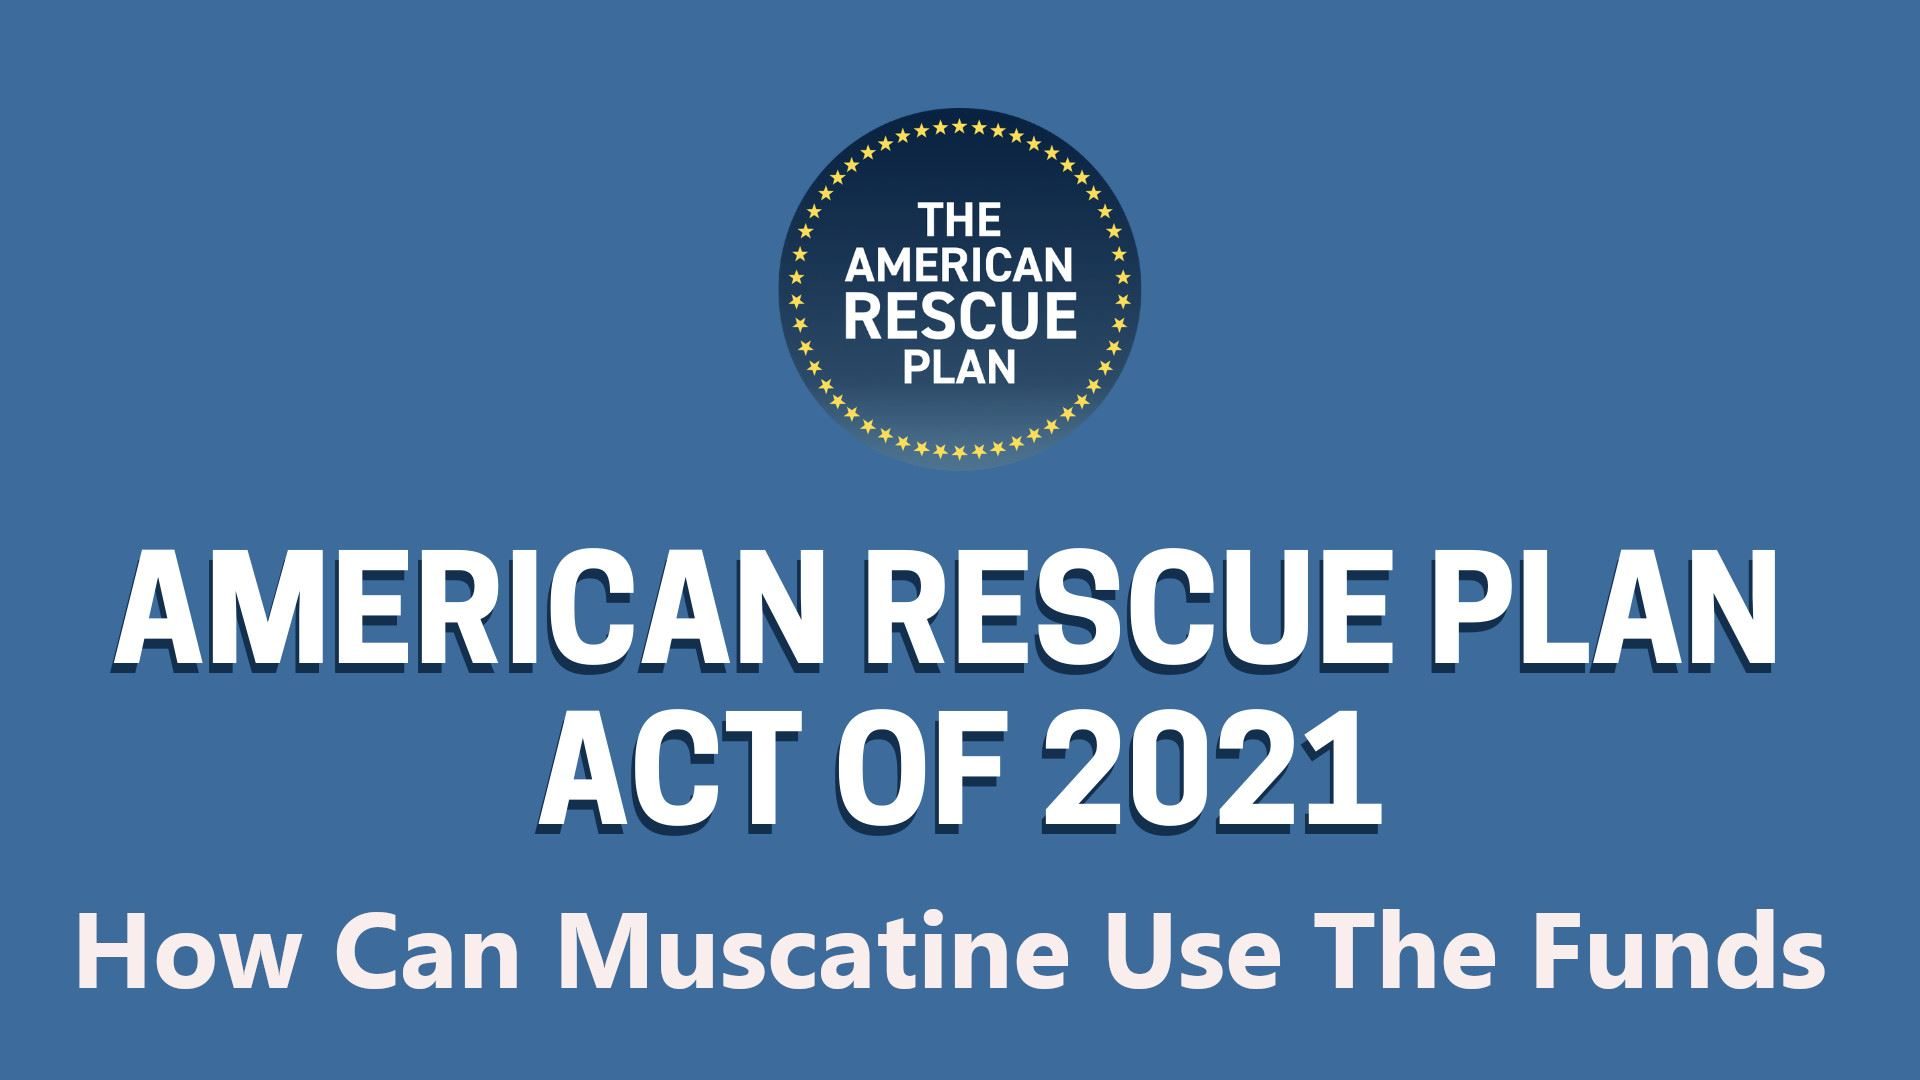 American Rescue Plan Act of 2021_Social Media Graphic (JPG)